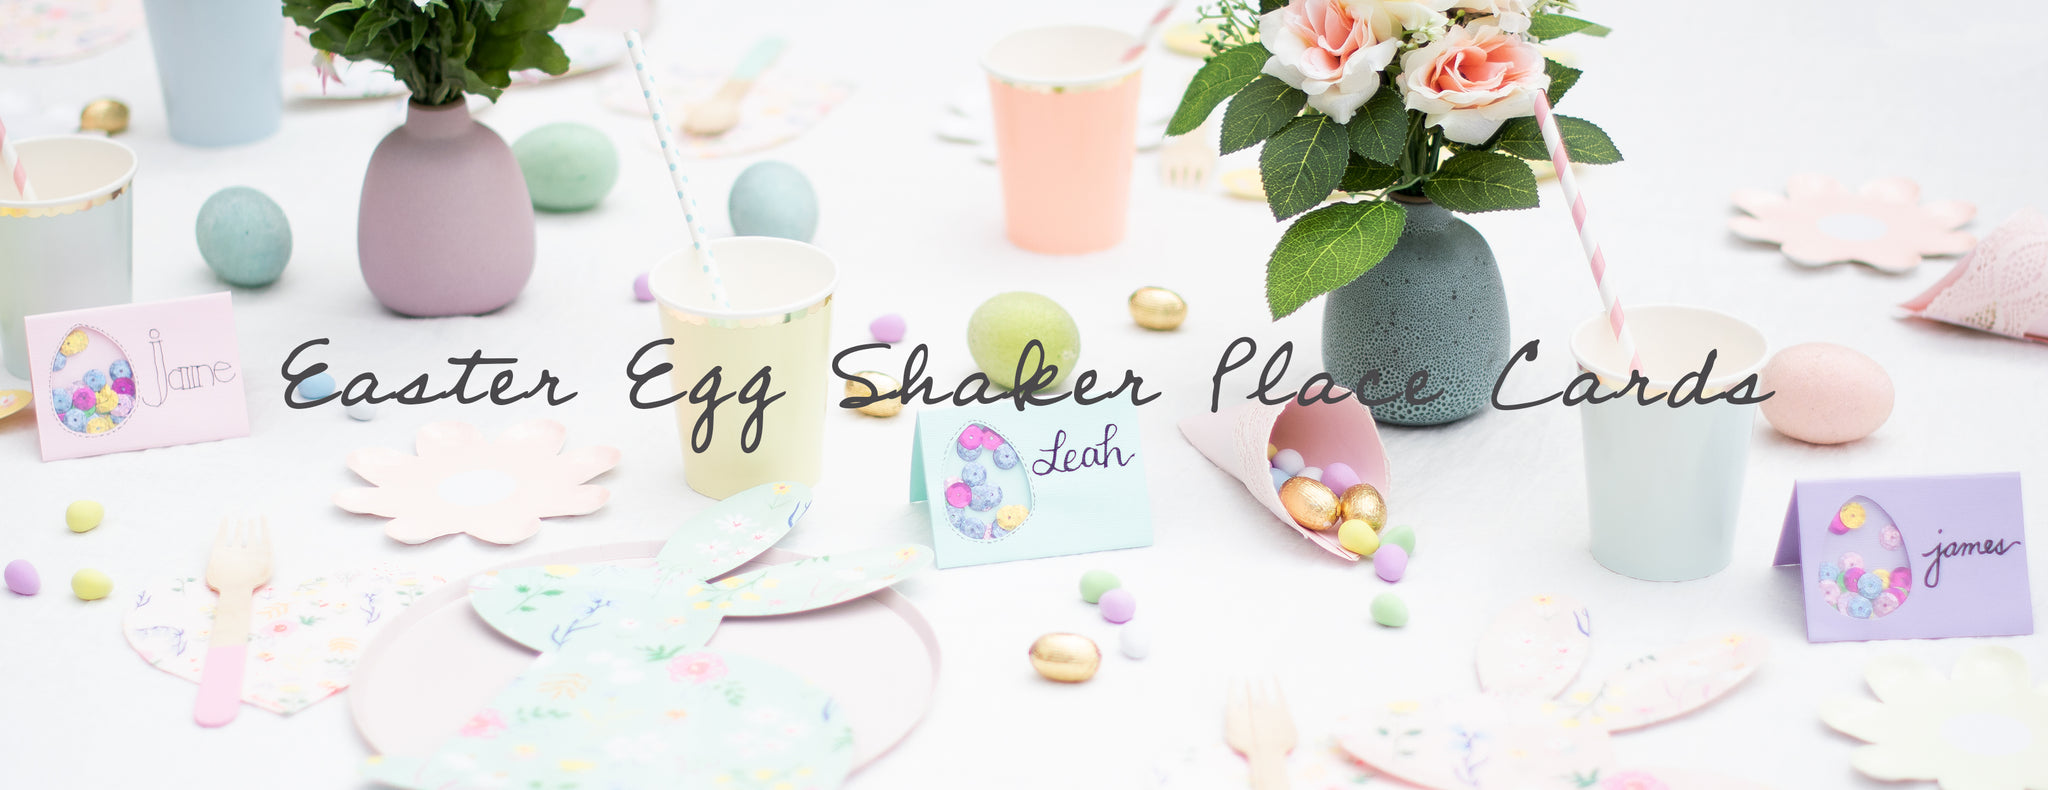 DIY - EASTER EGG SHAKER PLACE CARDS